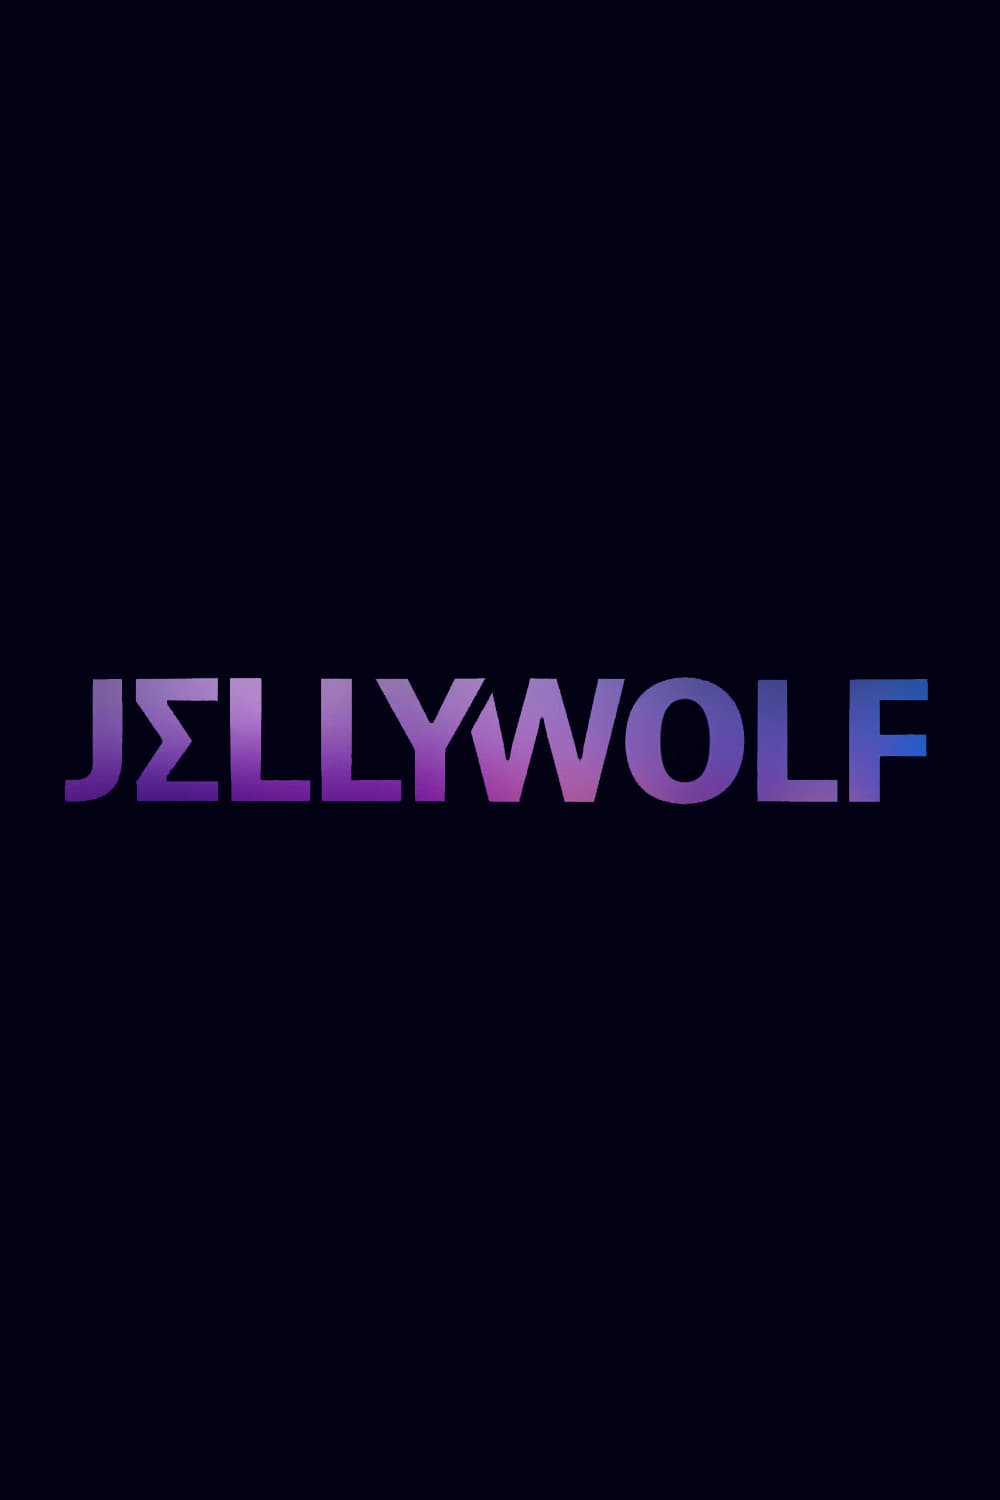 Jellywolf